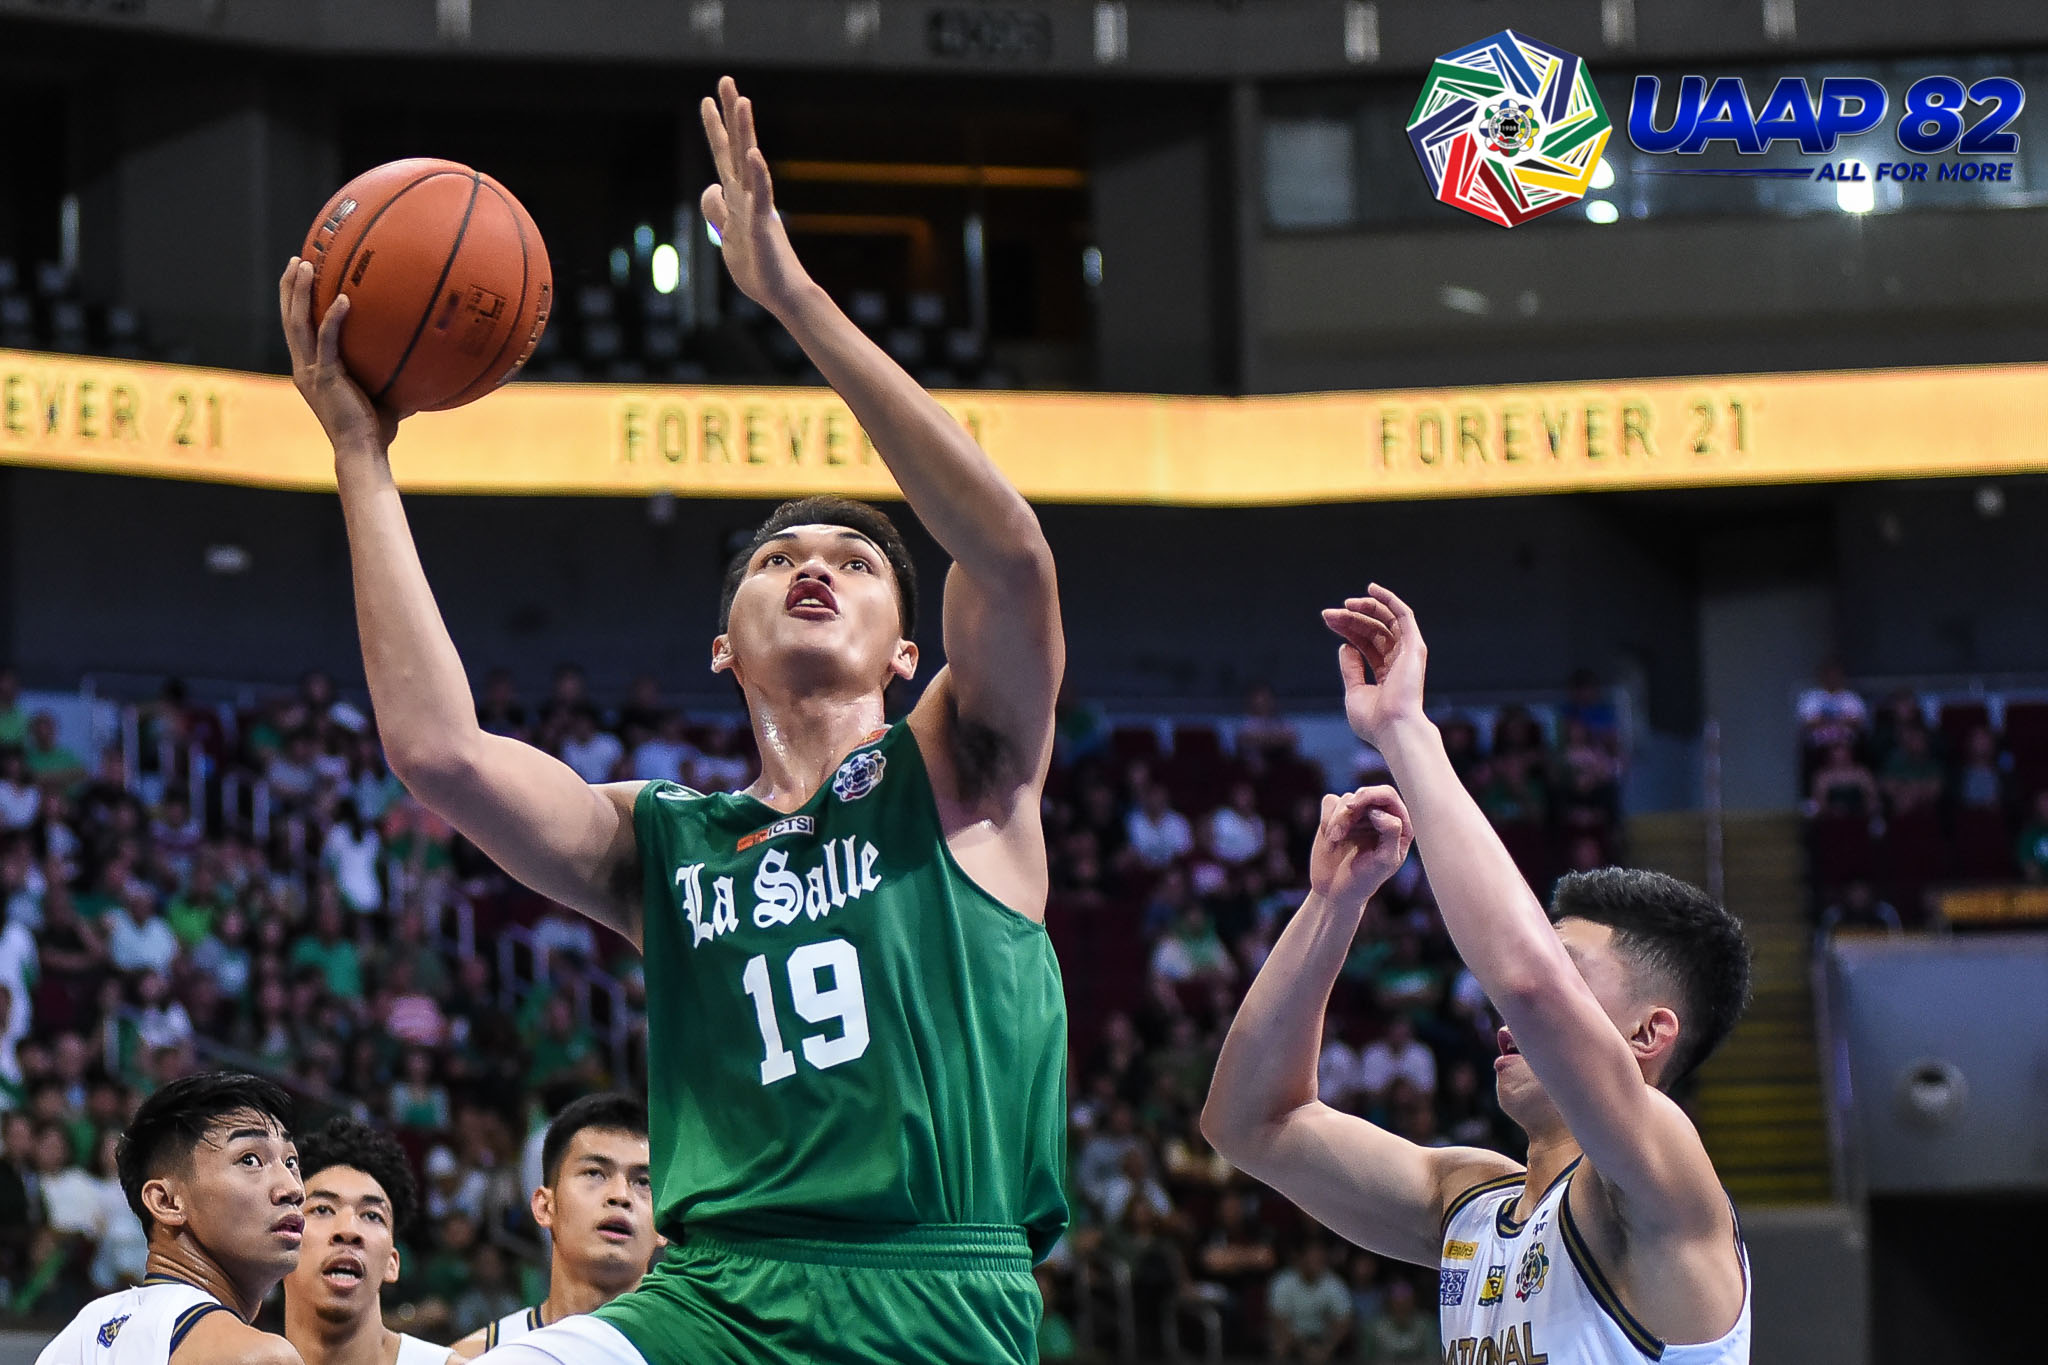 Tiebreaker Times Justine Baltazar posts 25-25, leads La Salle rout of NU for tie of third Basketball DLSU News NU UAAP  UAAP Season 82 Men's Basketball UAAP Season 82 Shaun Ildefonso NU Men's Basketball Justine Baltazar Jamike Jarin Jamie Orme-Malonzo Jamie Orme Gian Nazario DLSU Men's Basketball Dave Ildefonso Andrei Caracut